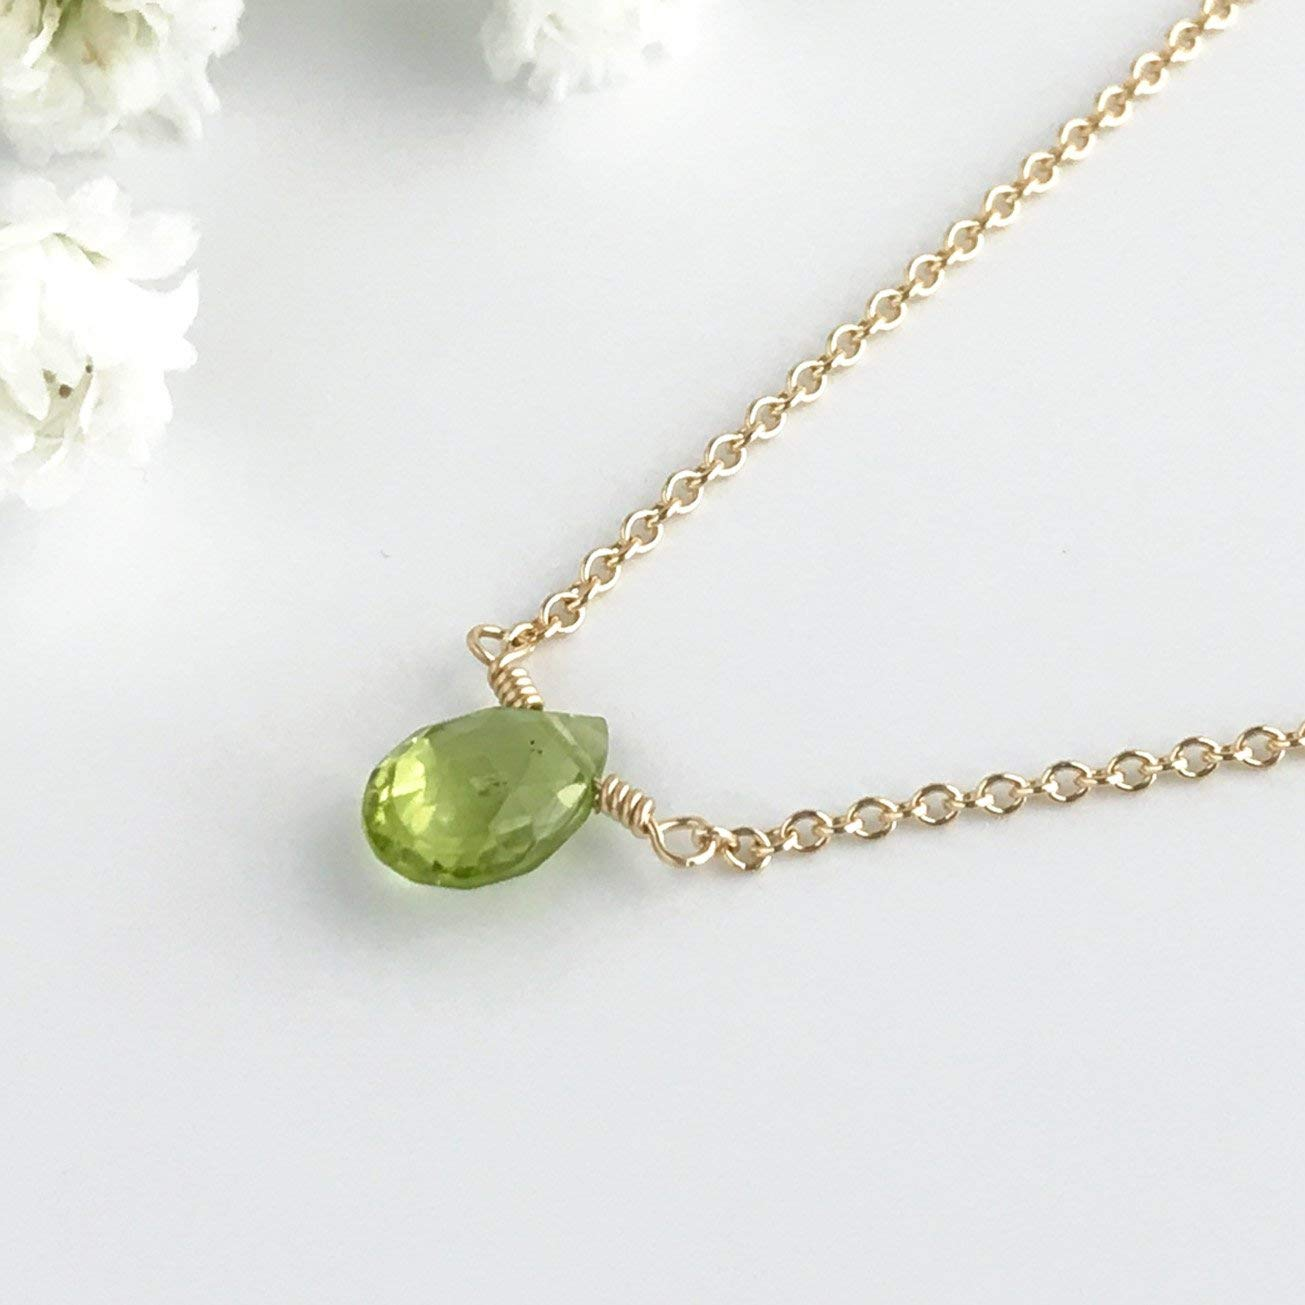 7475d1a19e423 Cheap White Gold Peridot Necklace, find White Gold Peridot Necklace ...